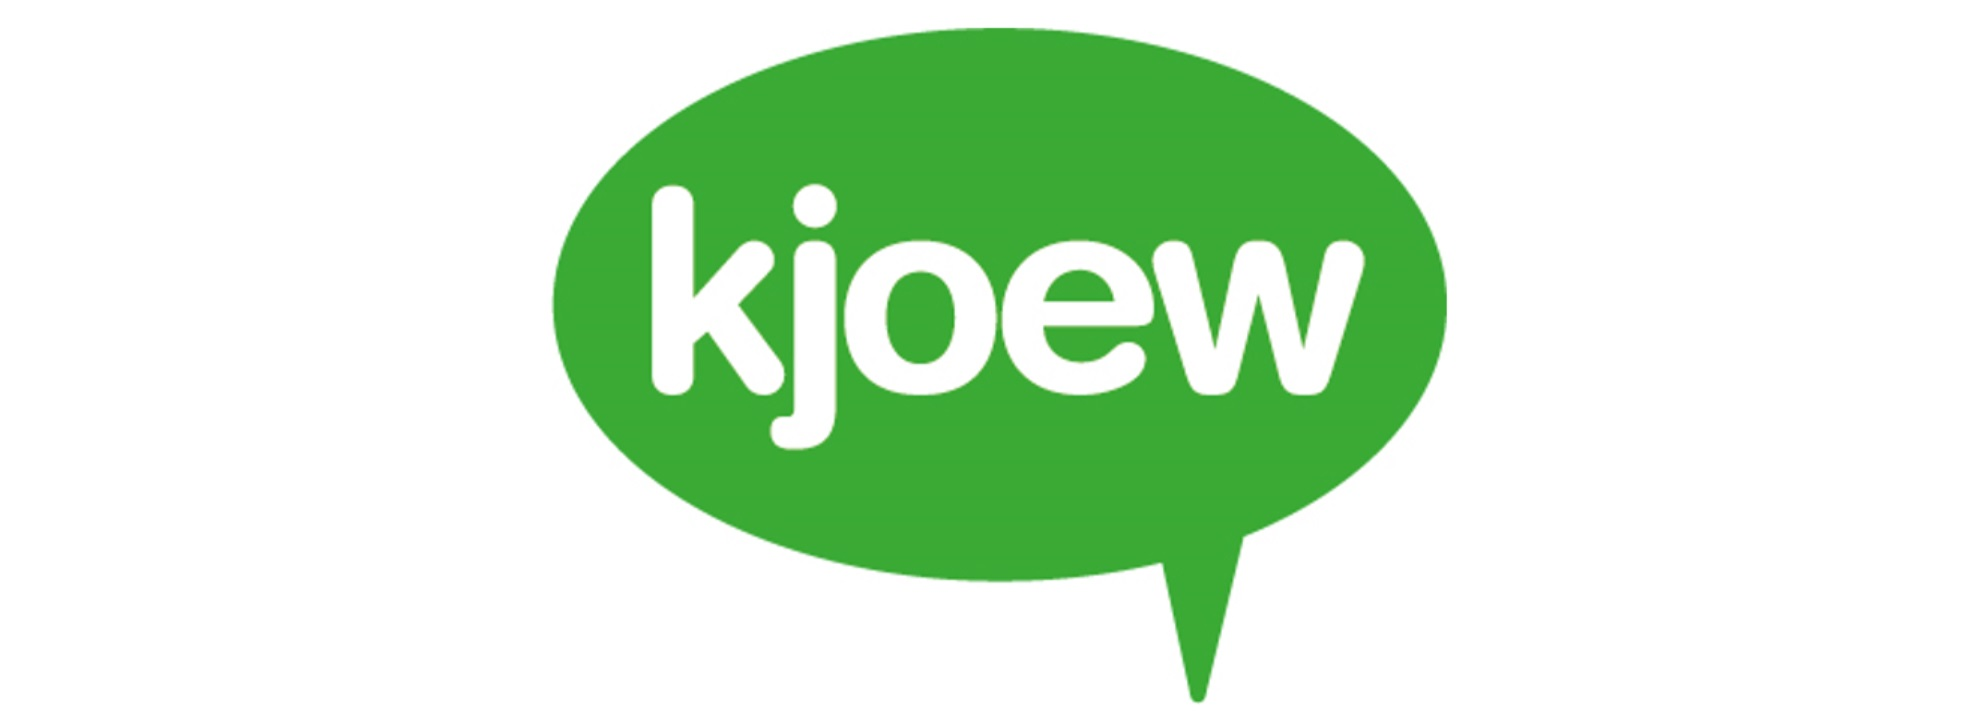 Kjoew (reclame - marketing - advies)